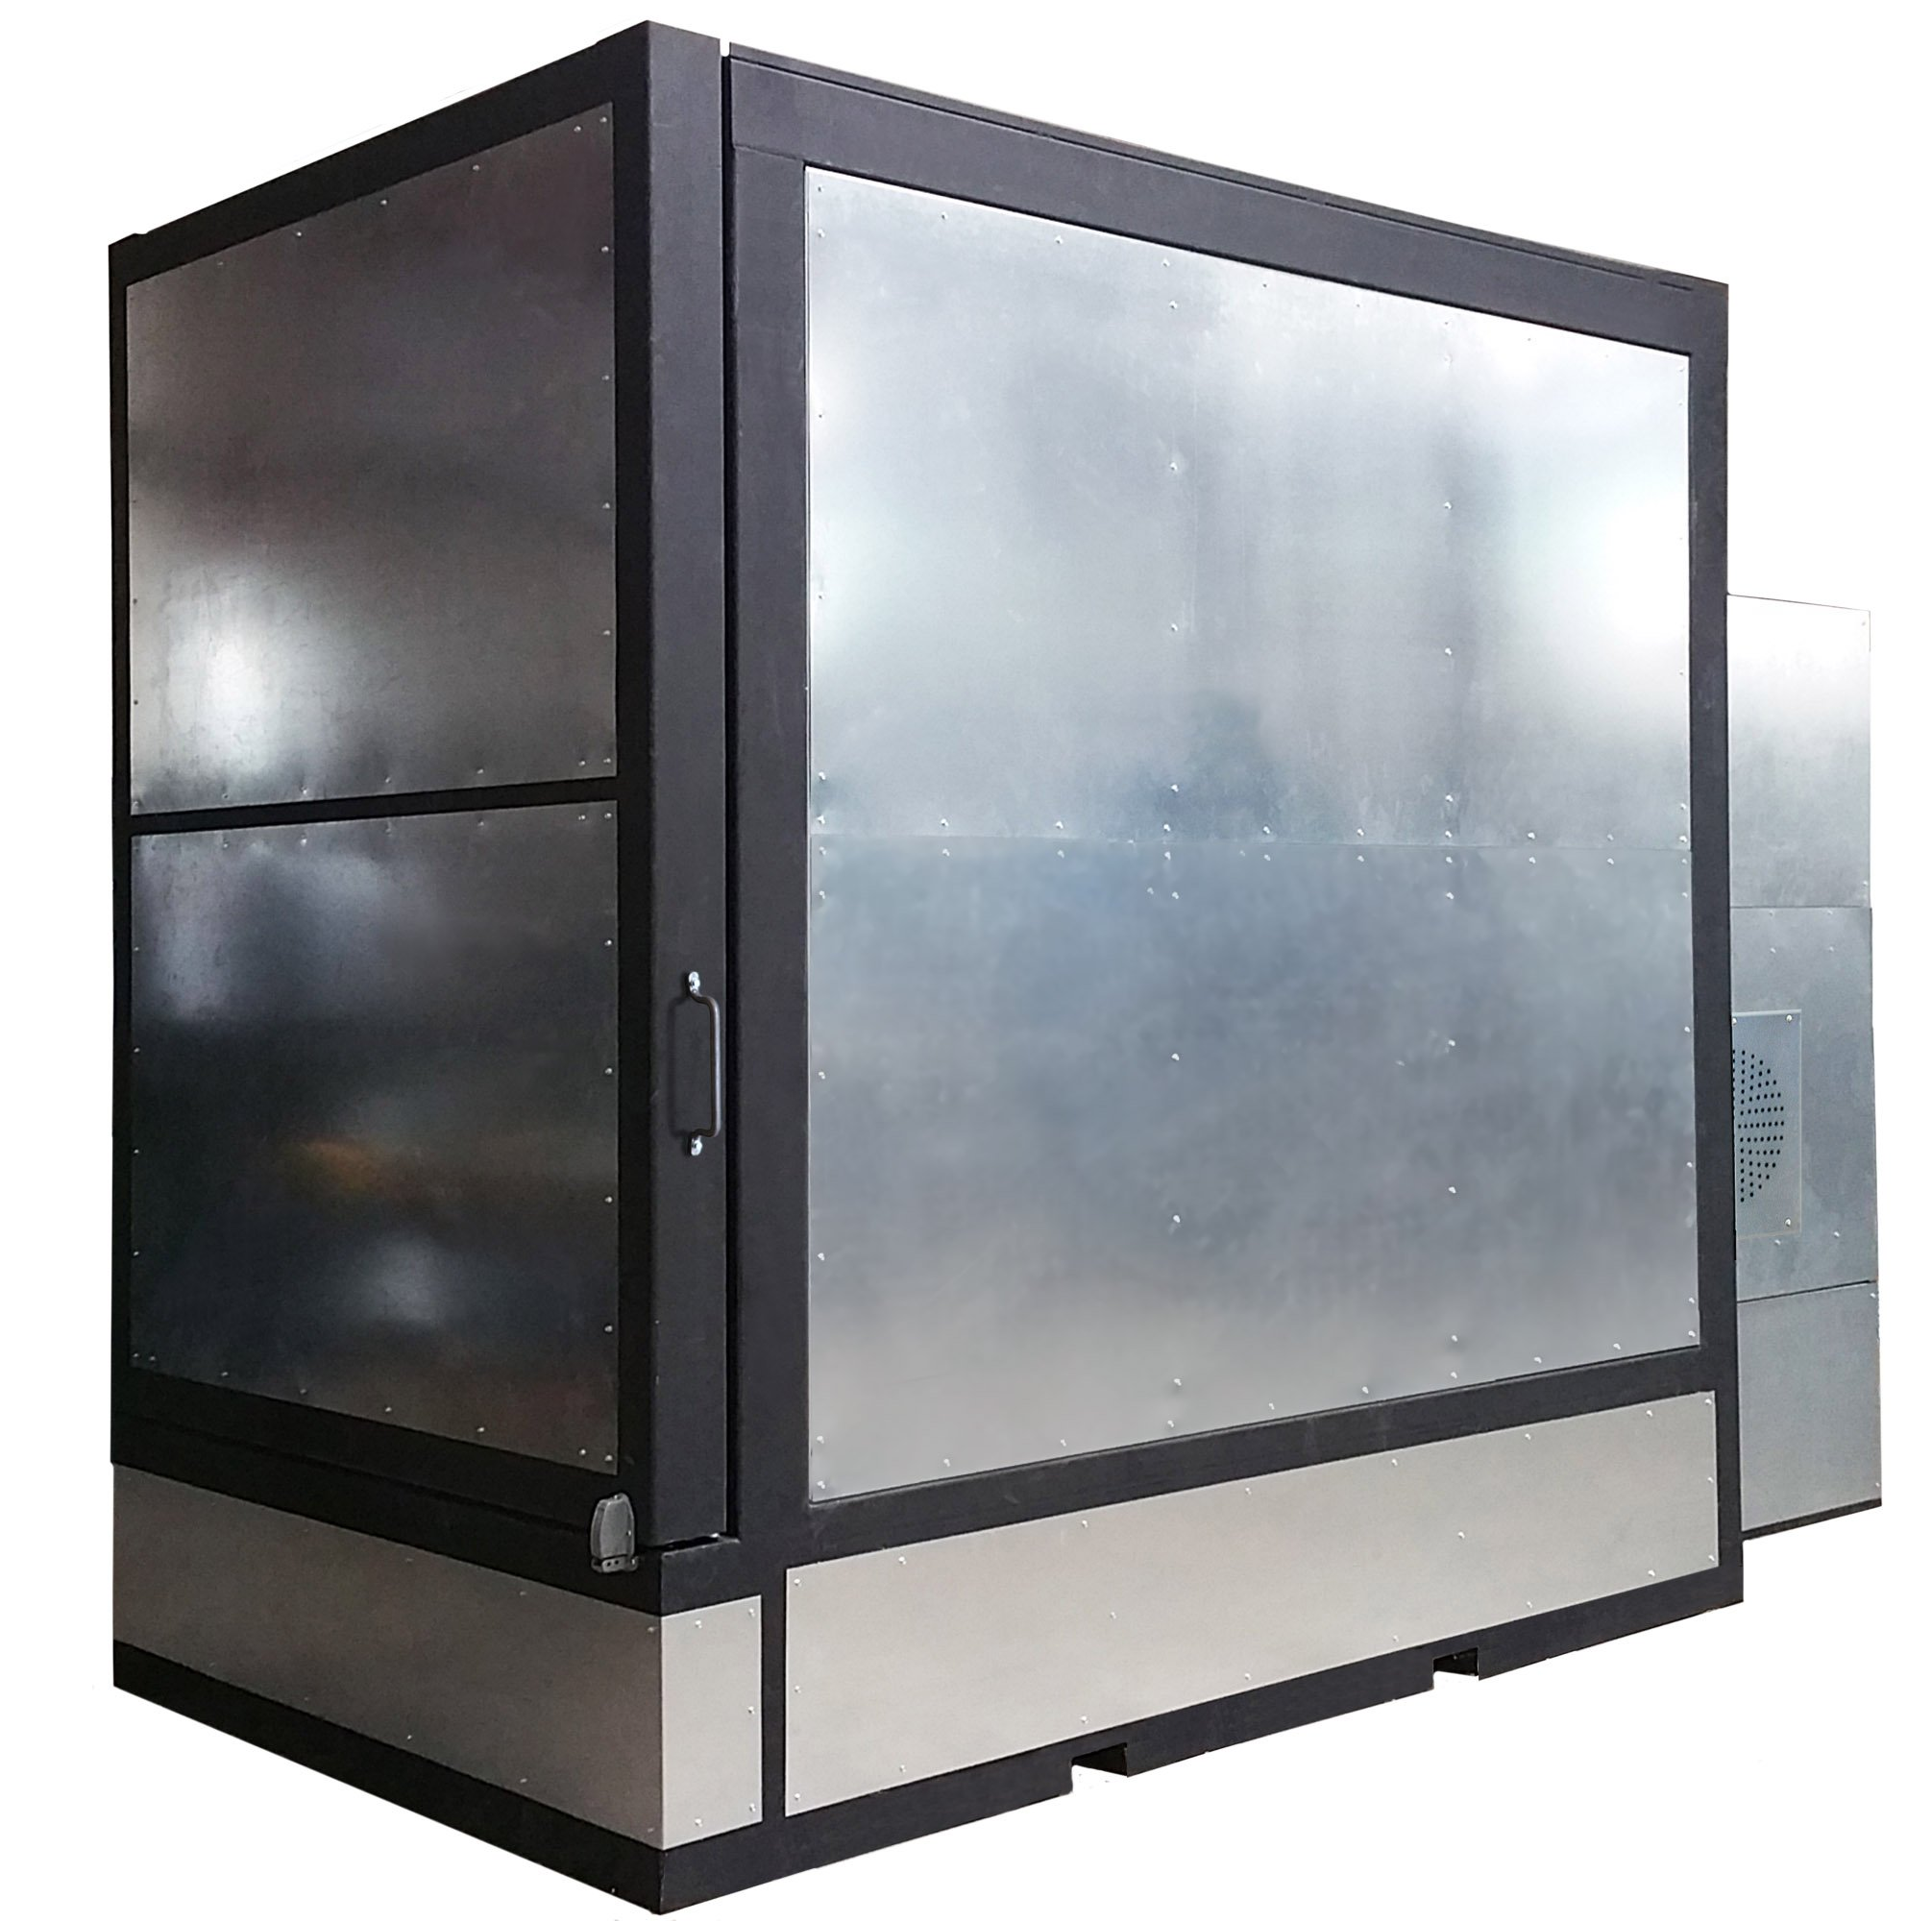 custom oven for curing